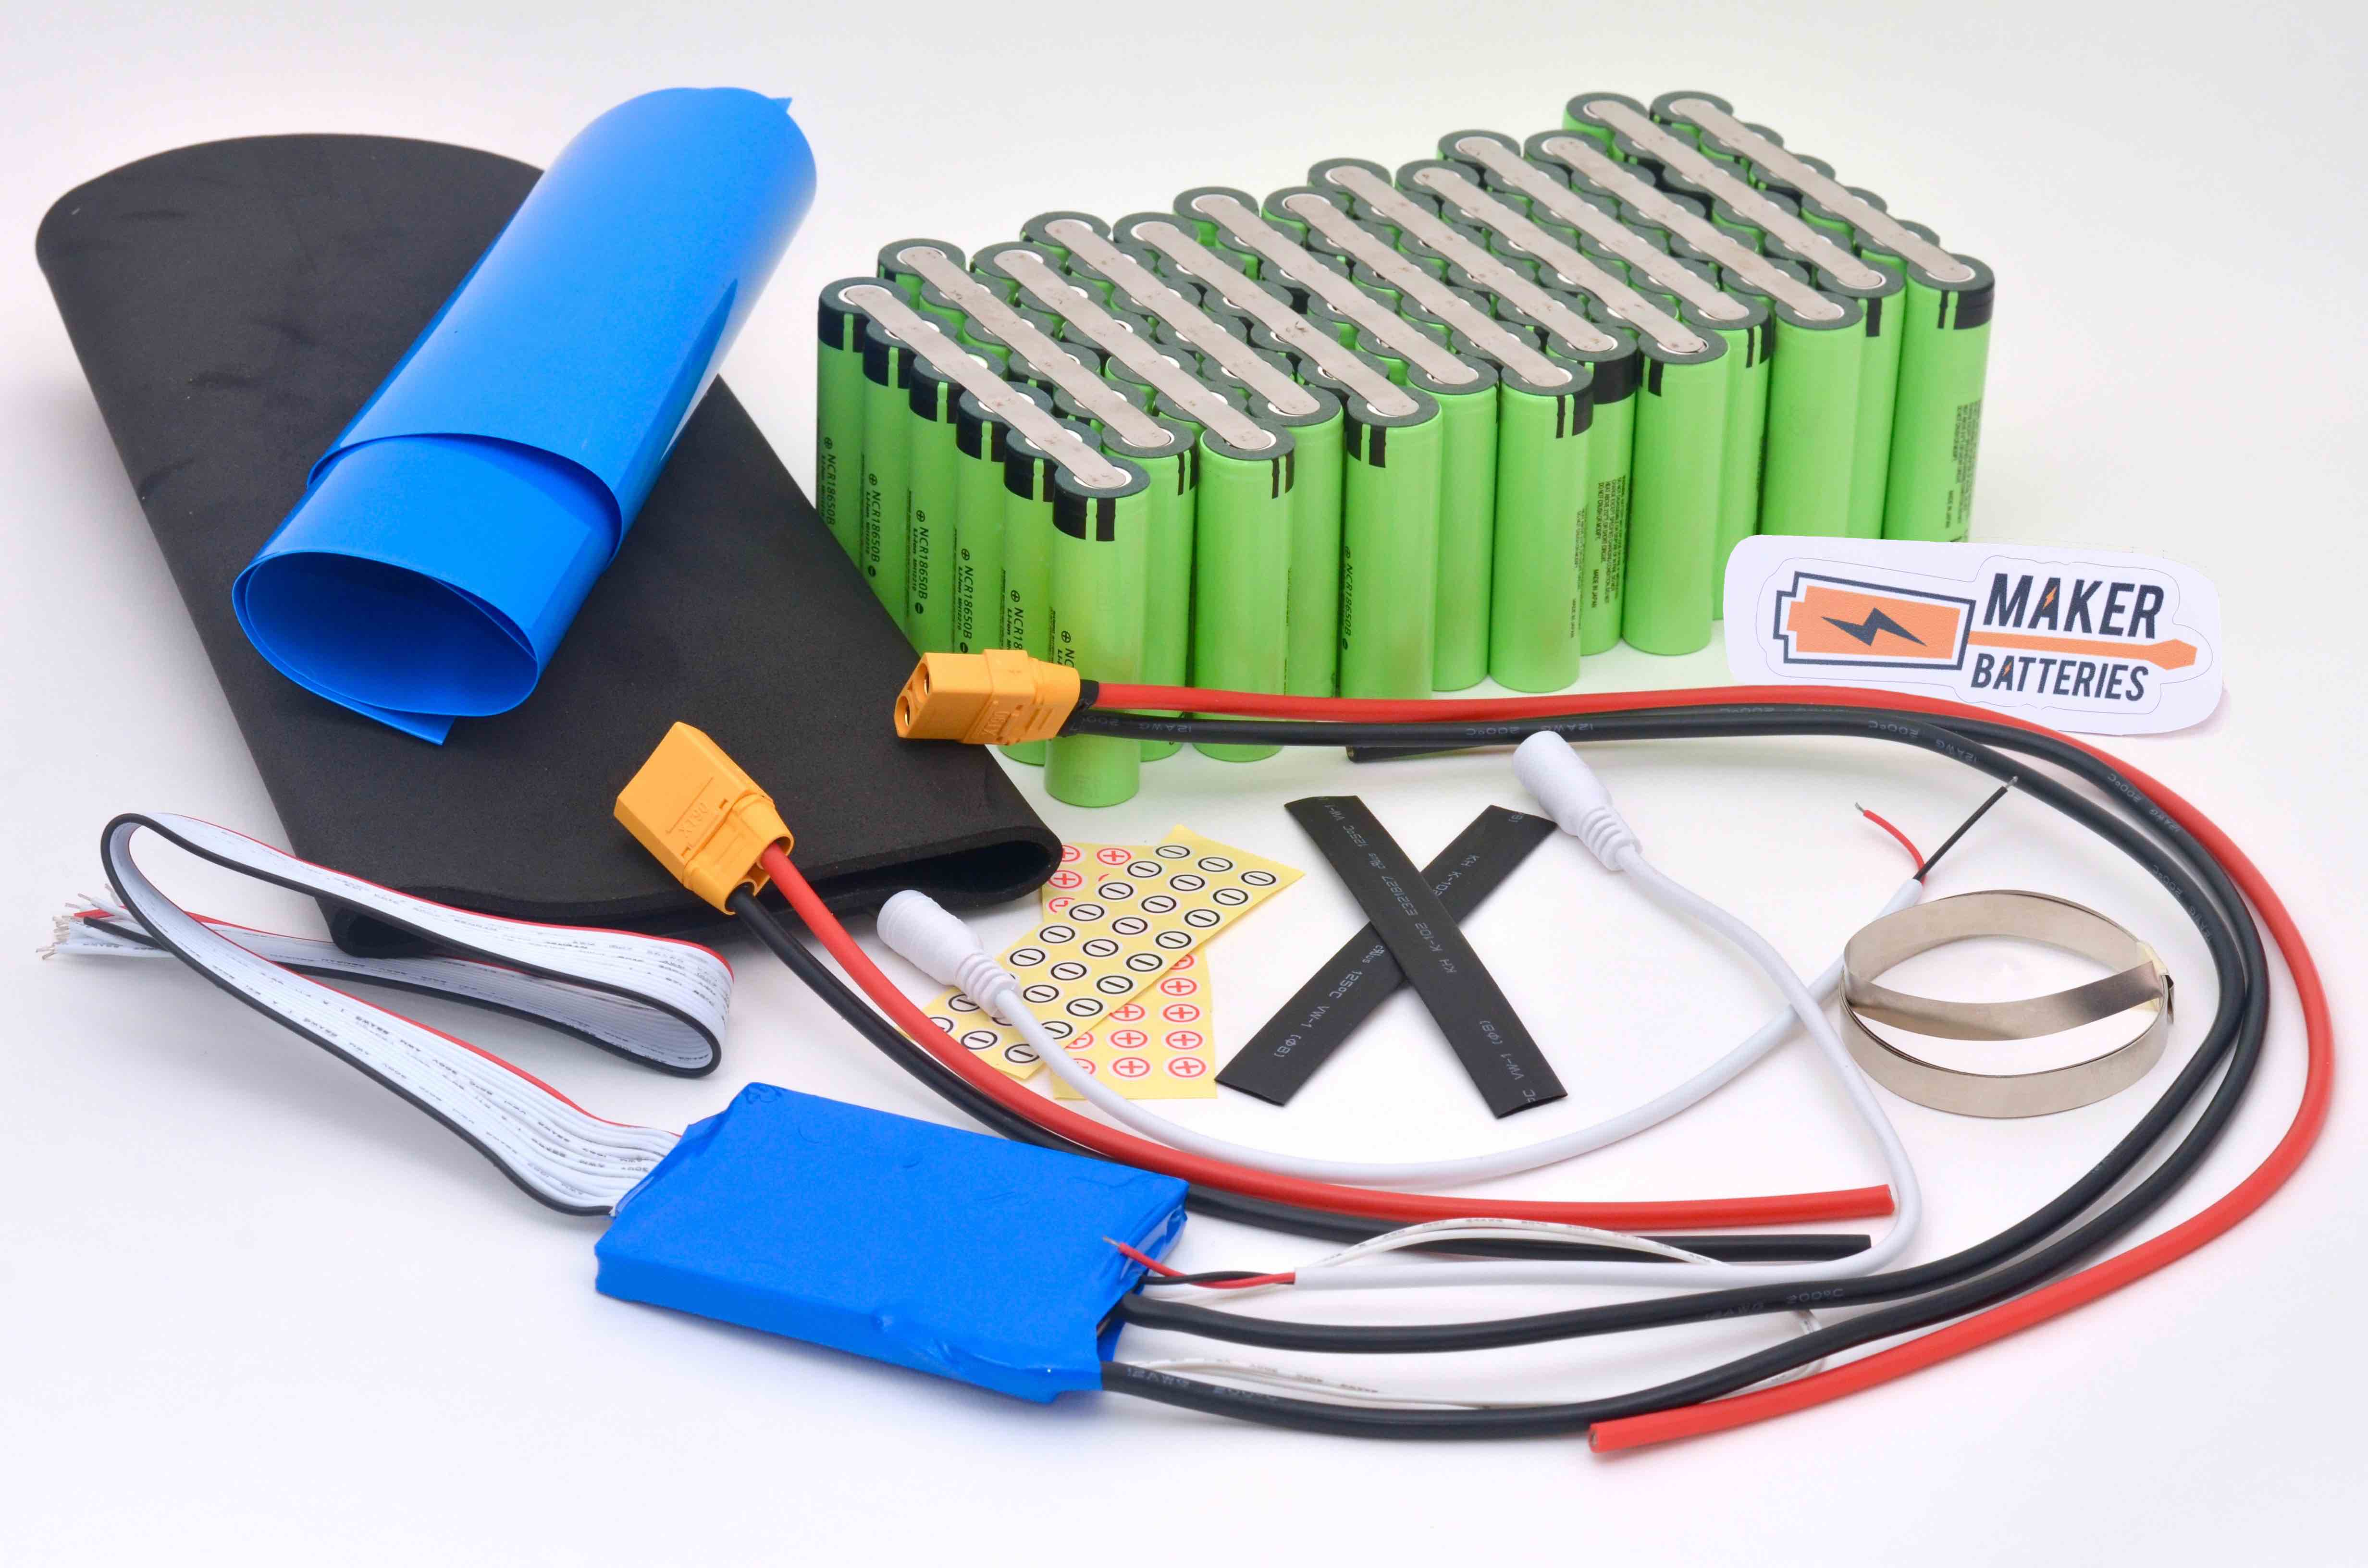 48V 20Ah Maker Battery Module Kit